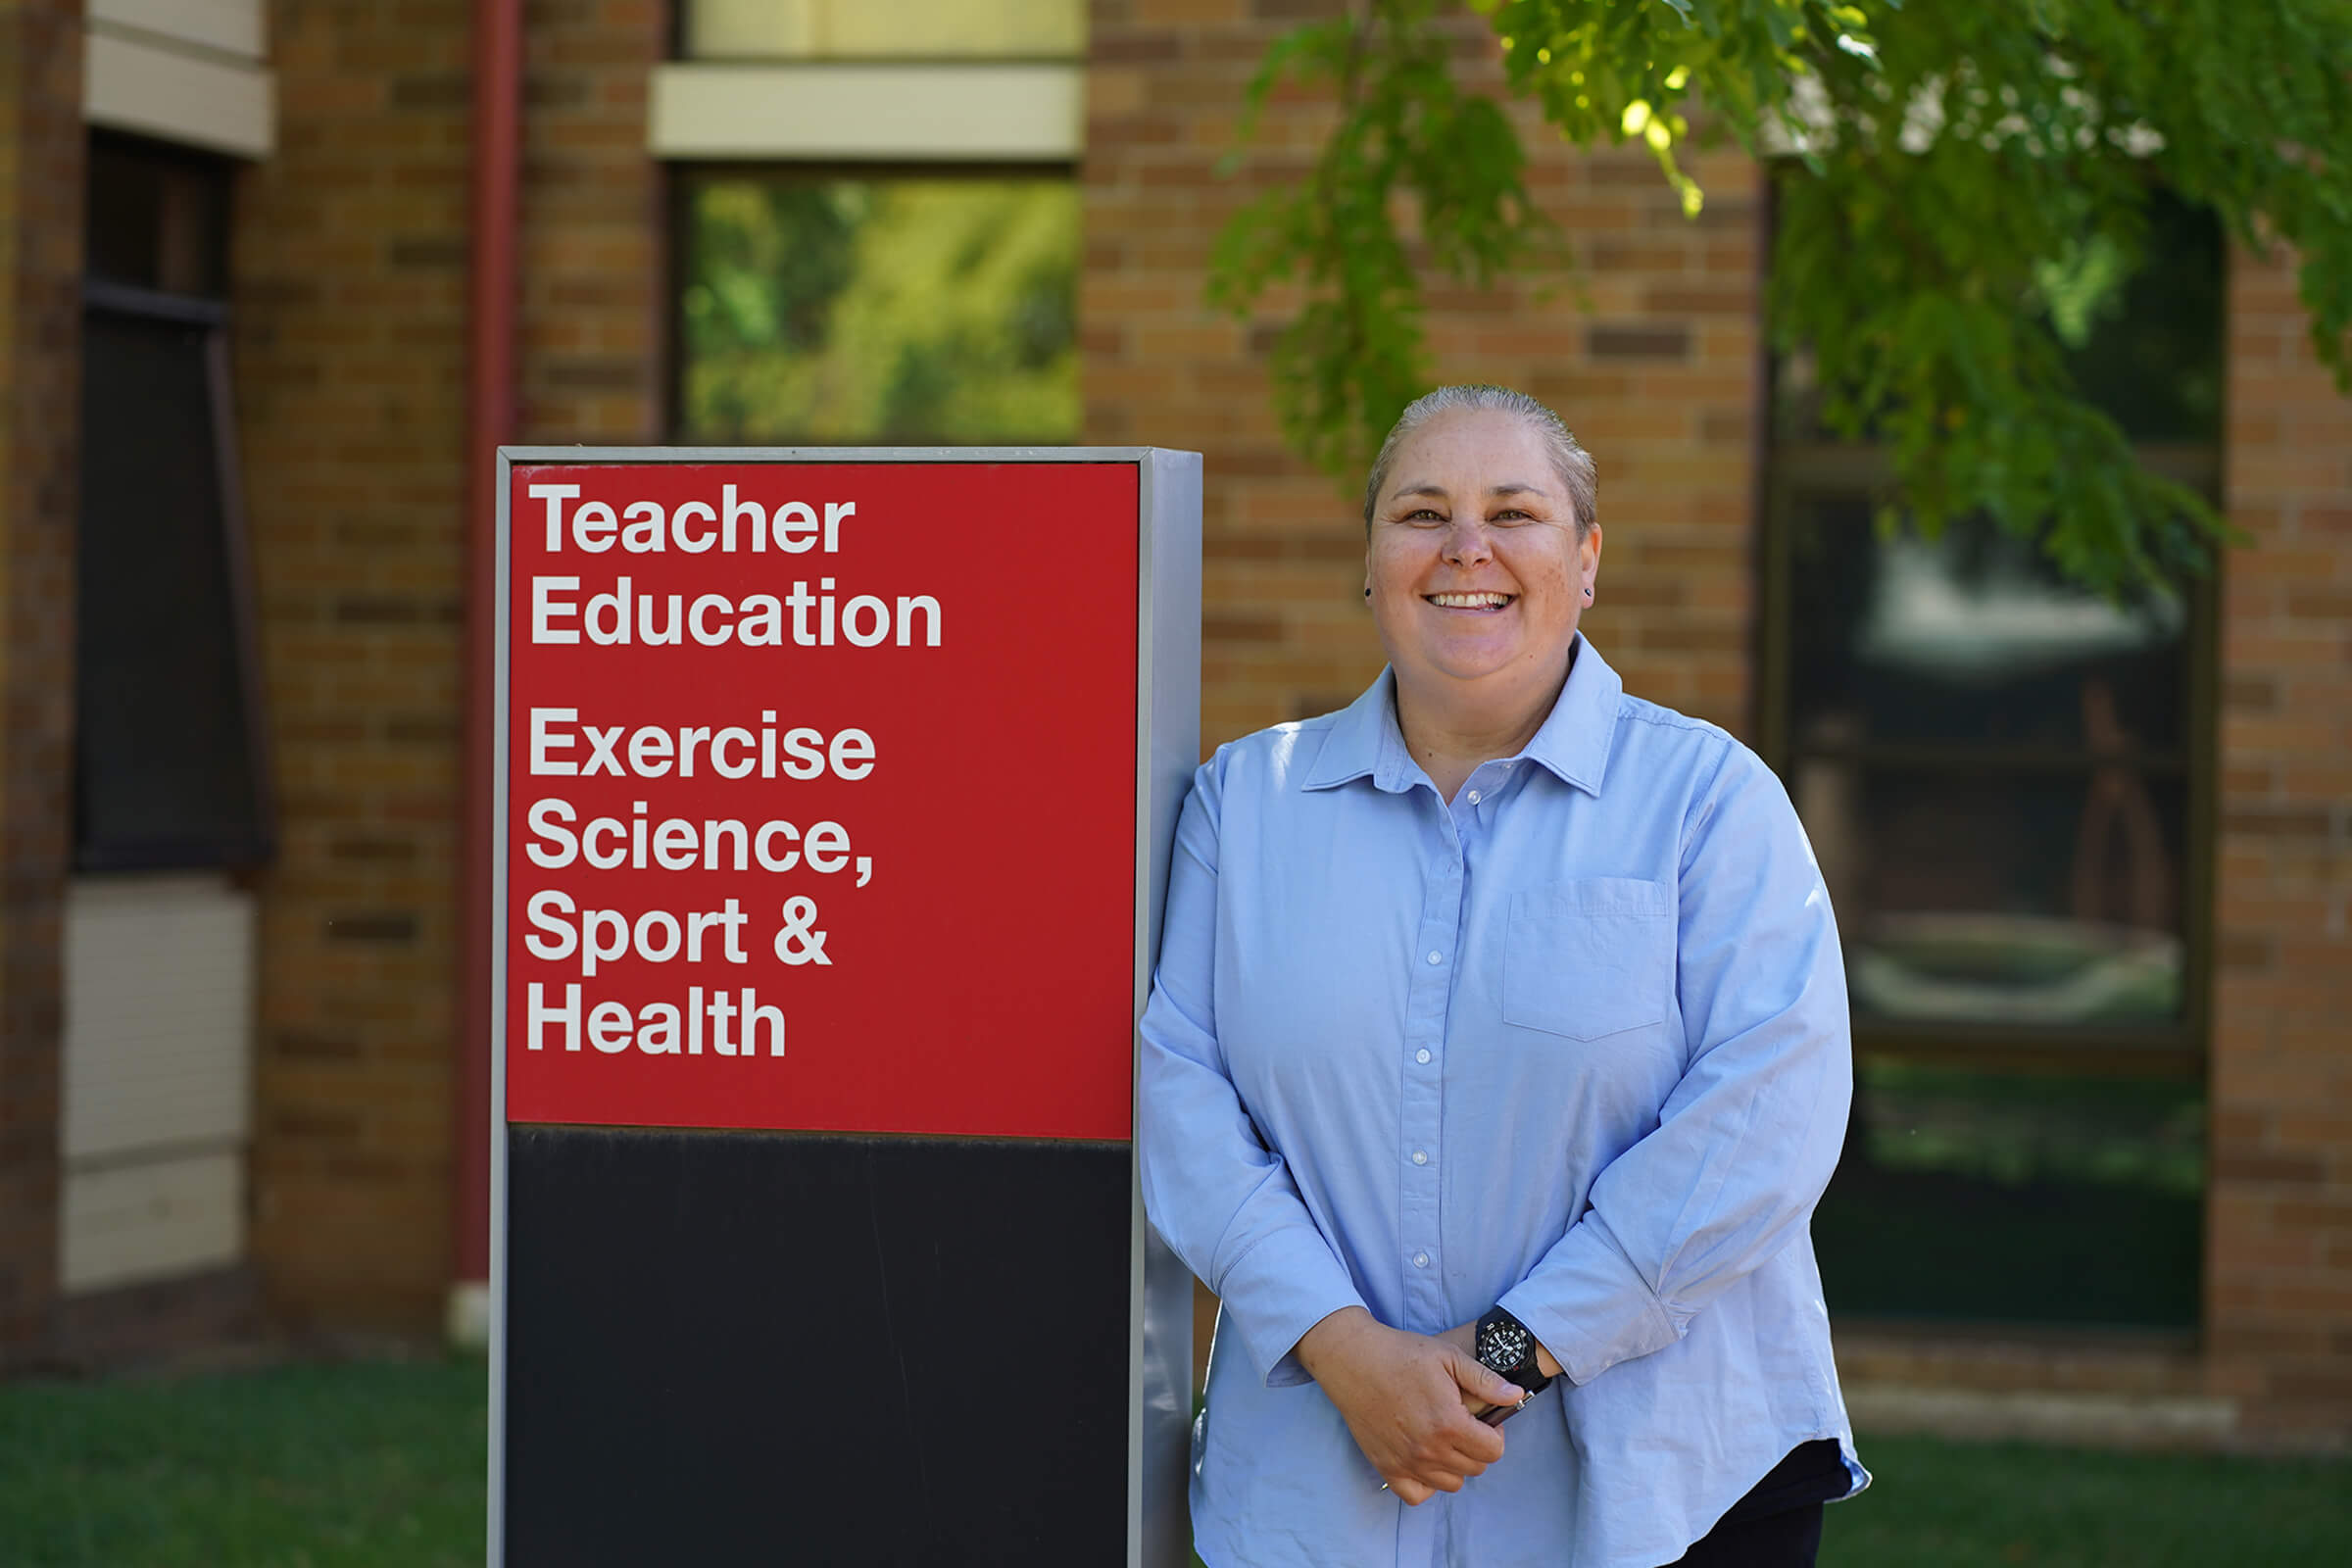 Charles Sturt University's Acting Head of School, School of Exercise Science, Sport and Health, Dr Chelsea Litchfield on Bathurst campus.